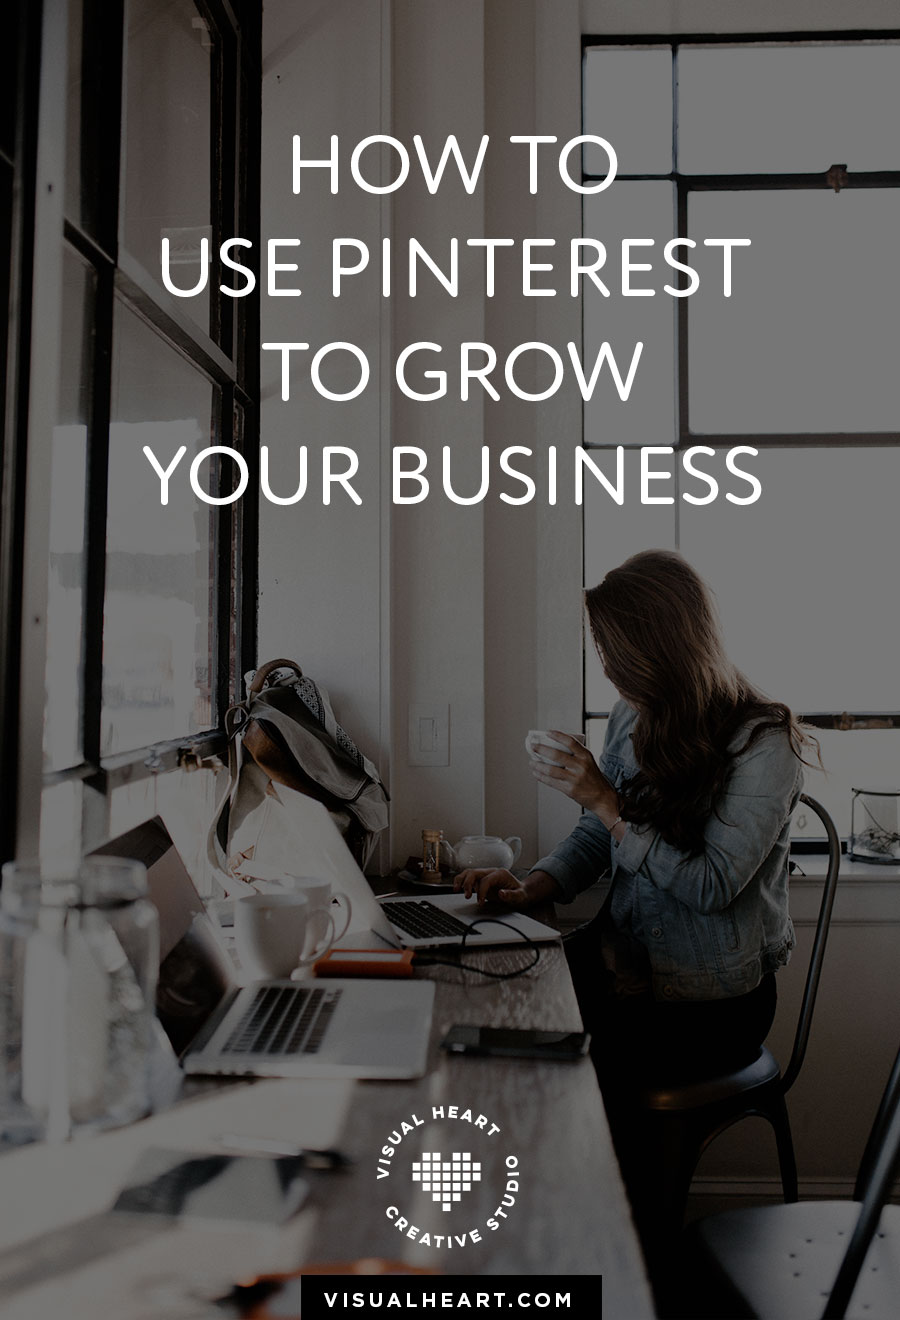 Pinterest tips for business. How to drive traffic to your website using Pinterest. @visualheart